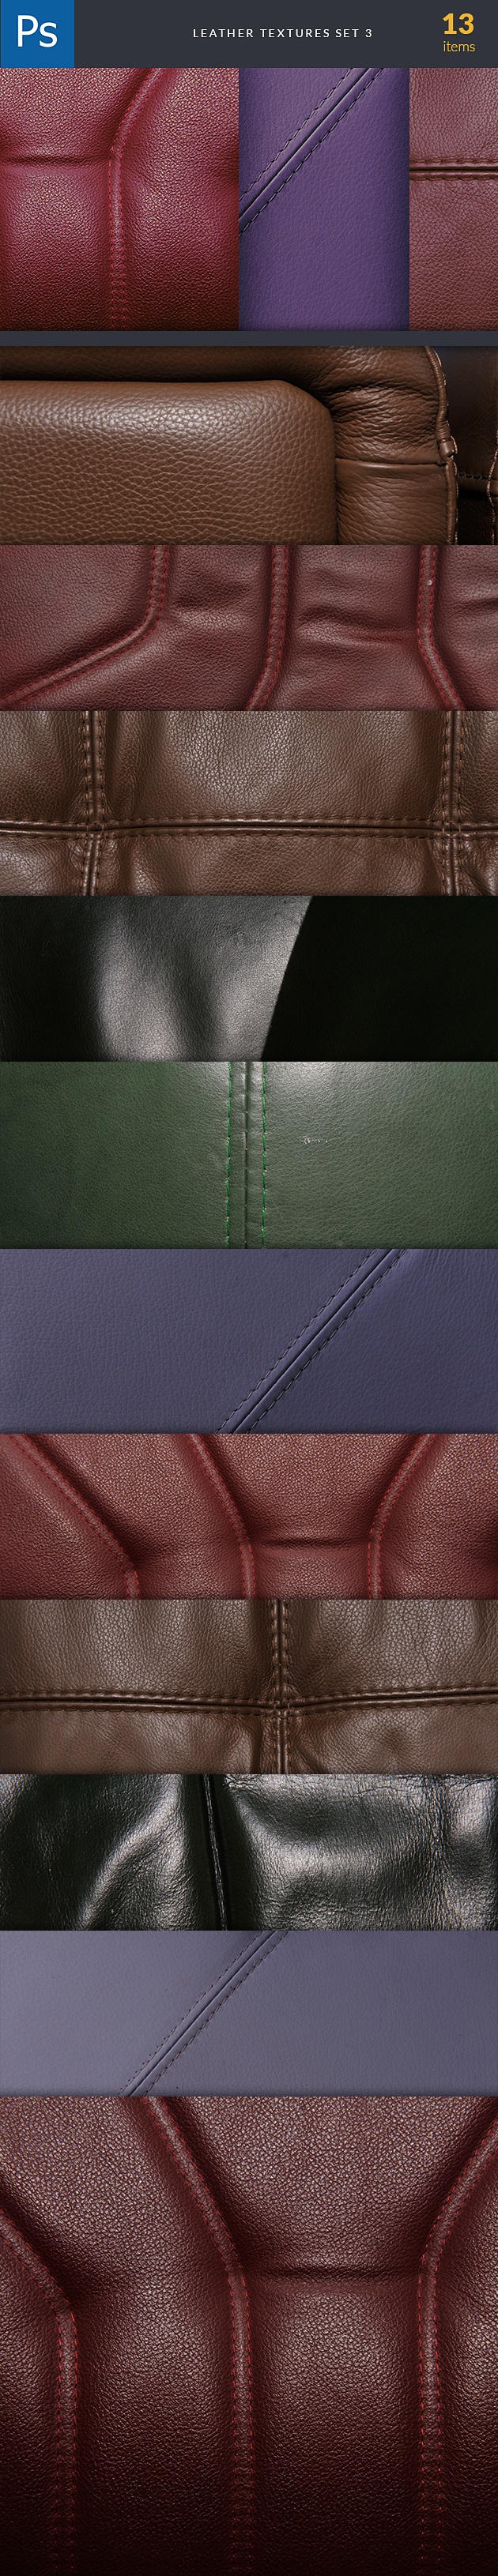 designtnt-textures-leather-set-3-preview-large